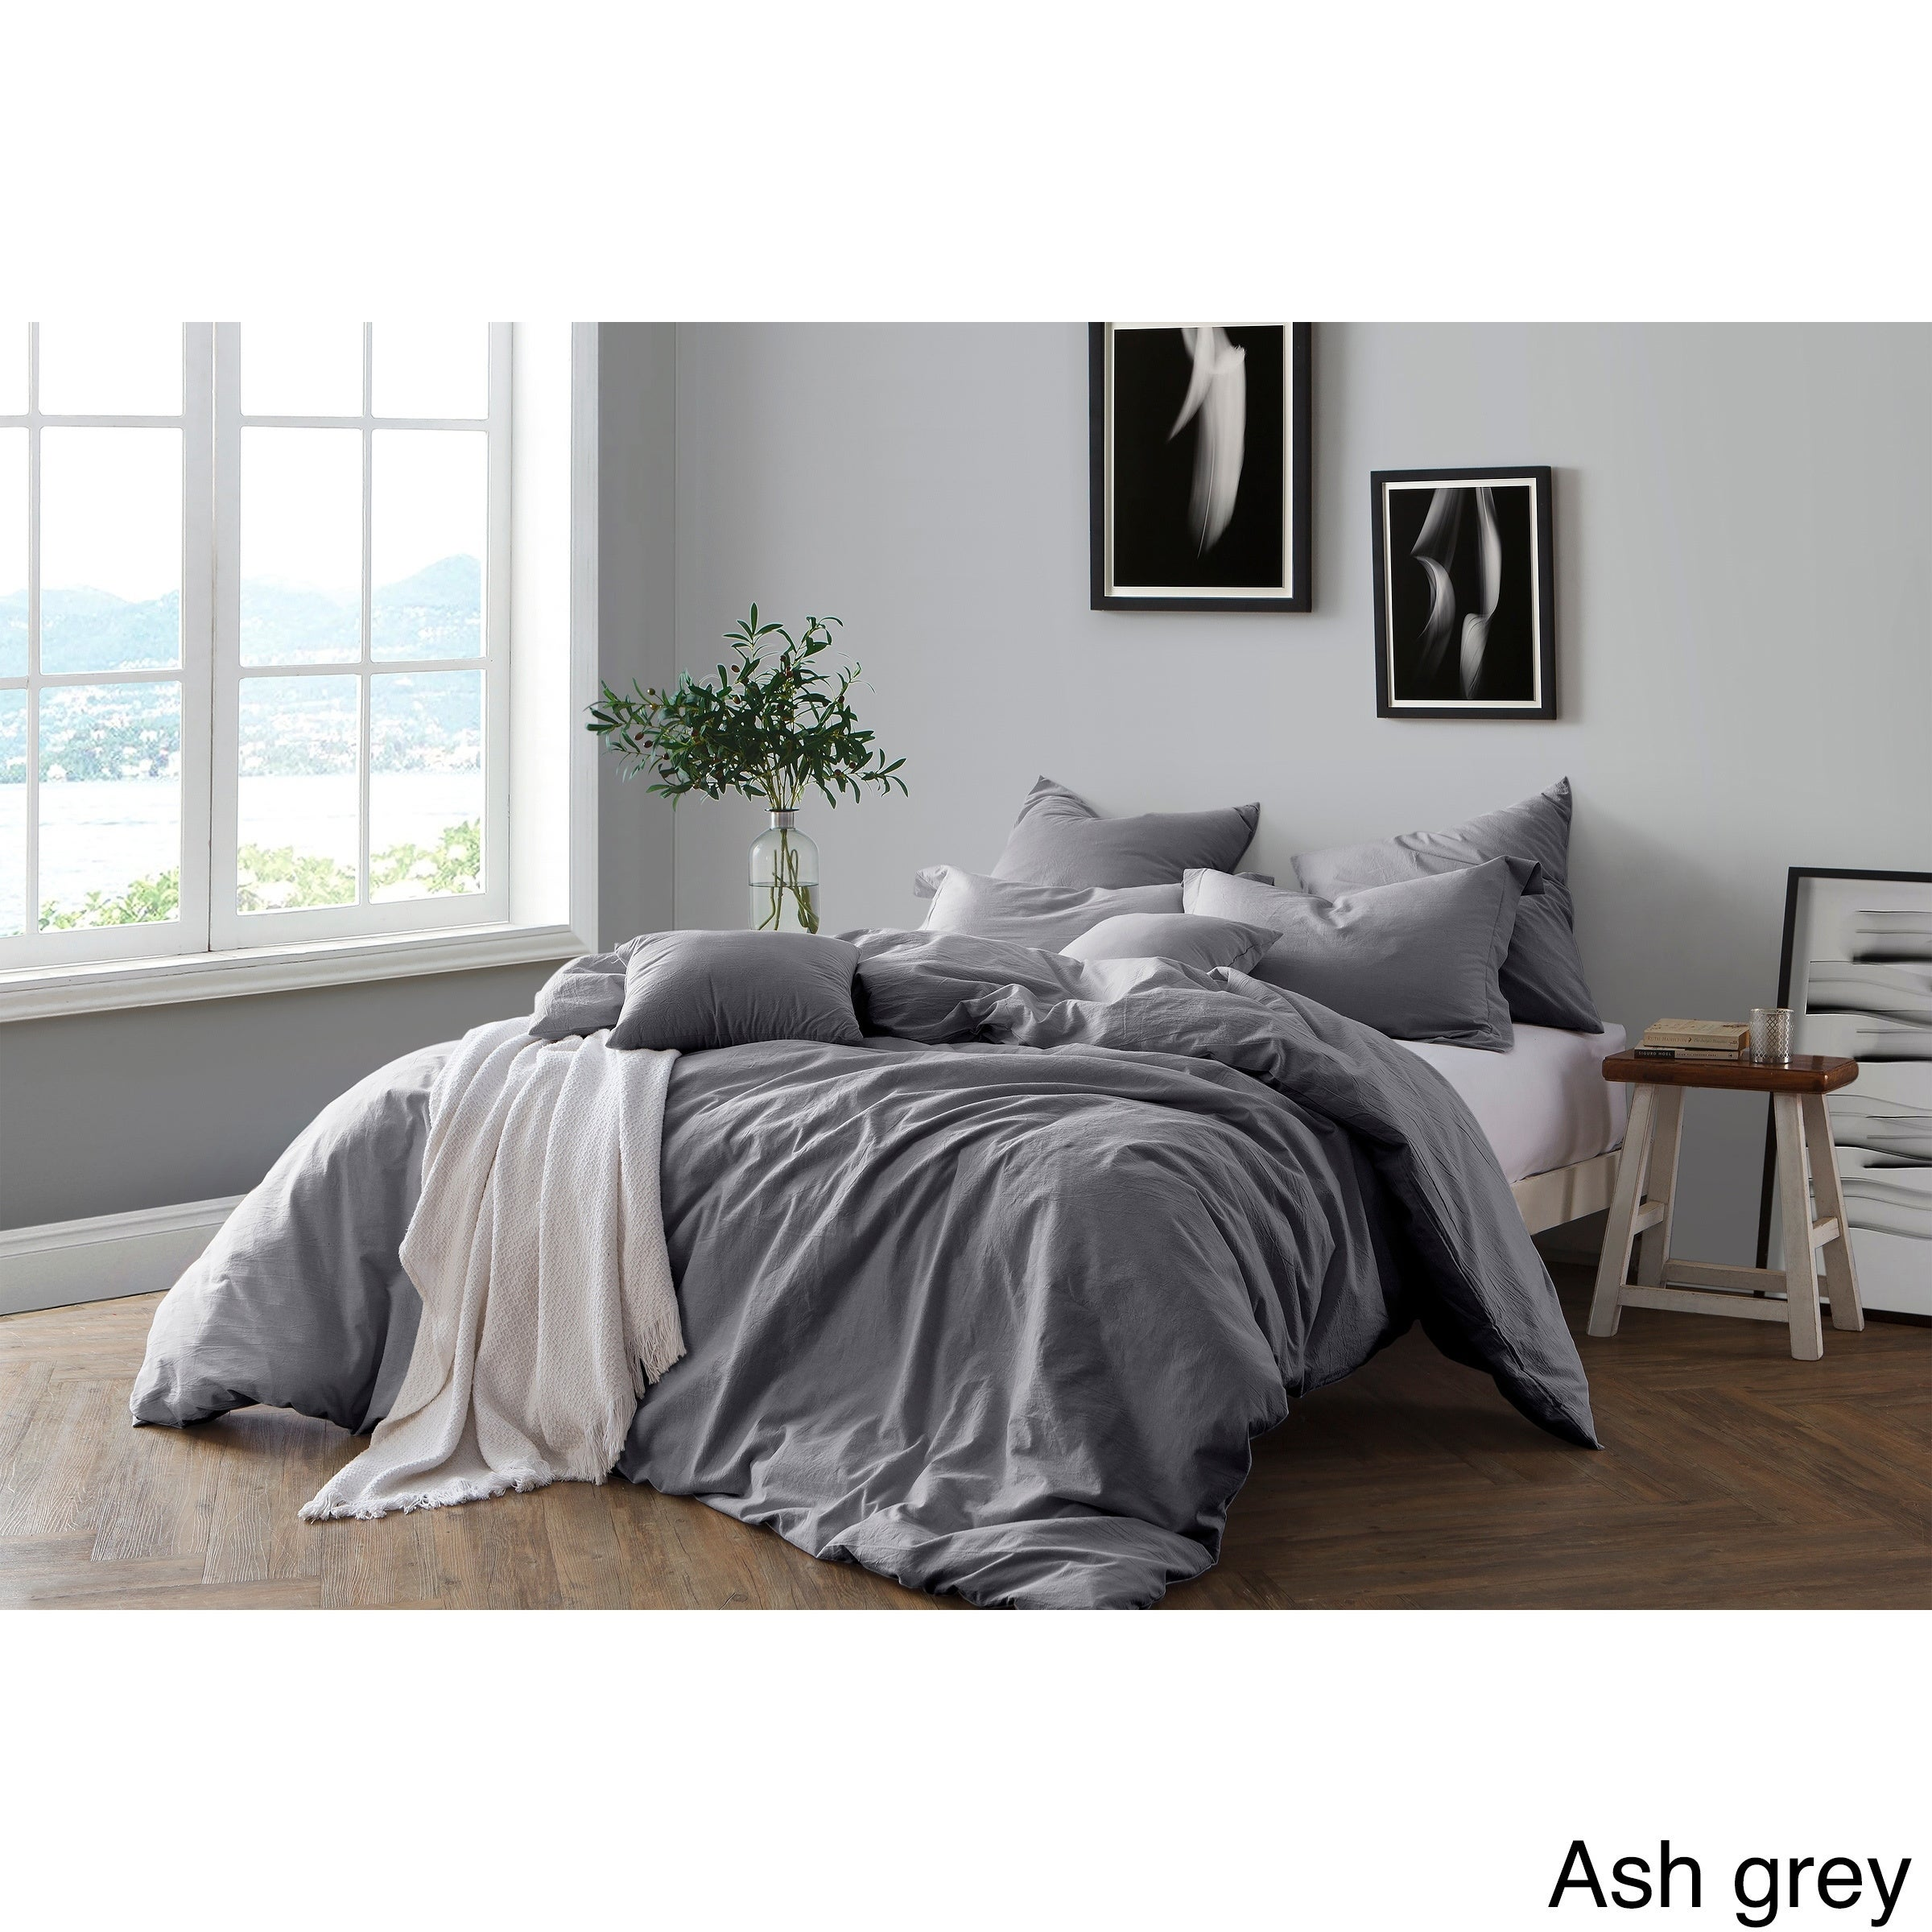 All Natural Pre Washed Yarn Dye Cotton Chambray Duvet Cover Set Free Shipping Today 24748758